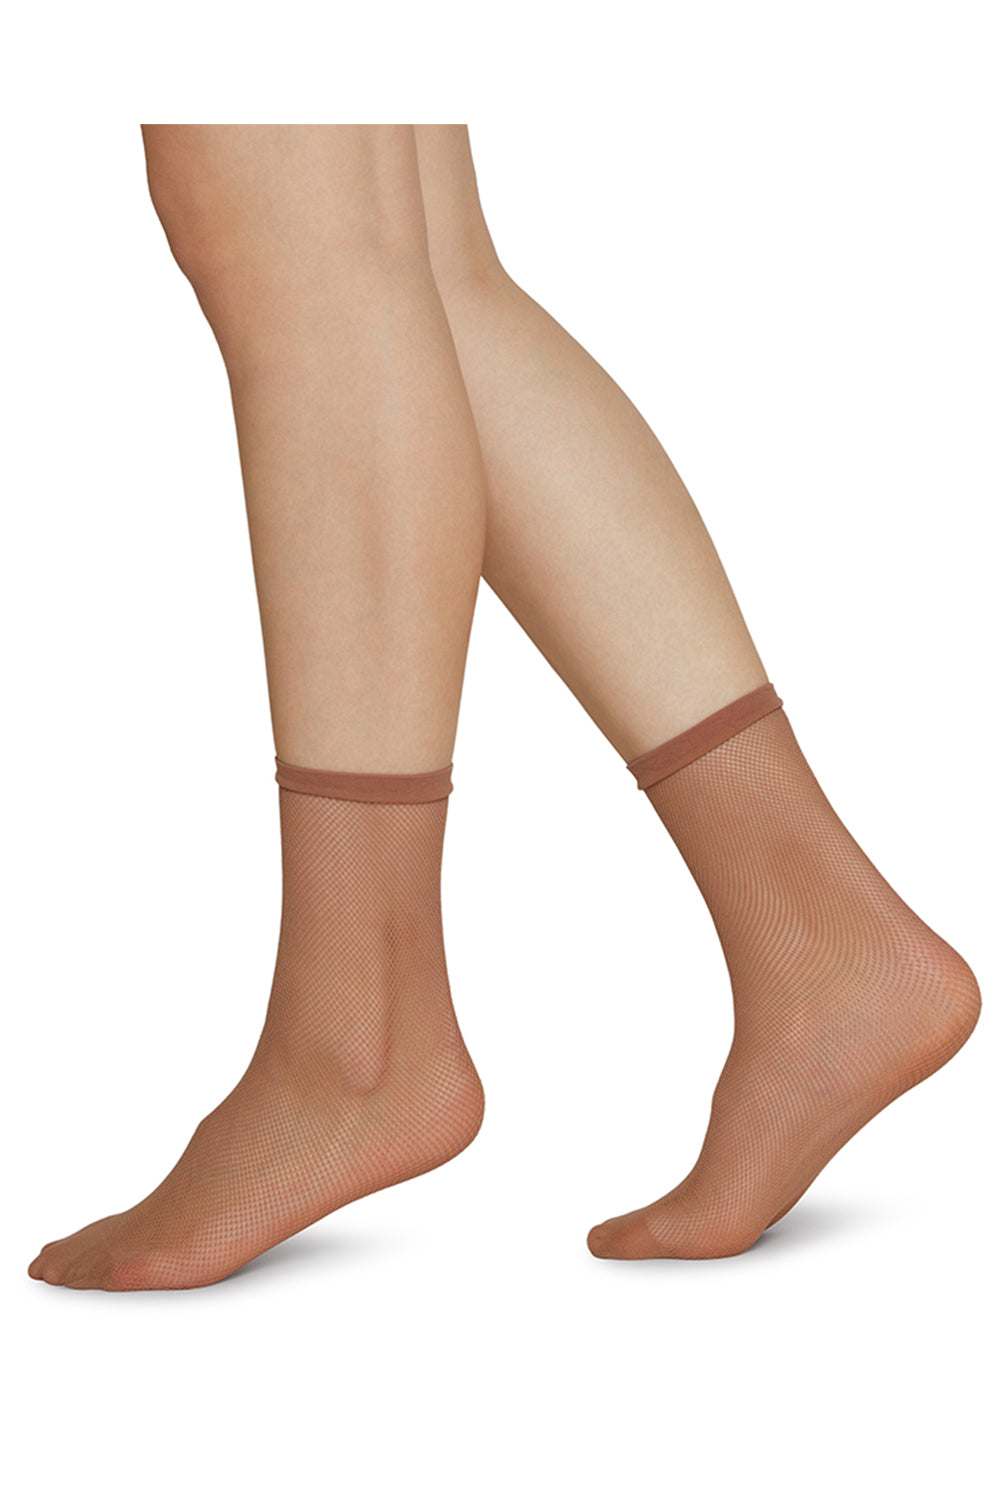 Elvira Net Socks in Caramel